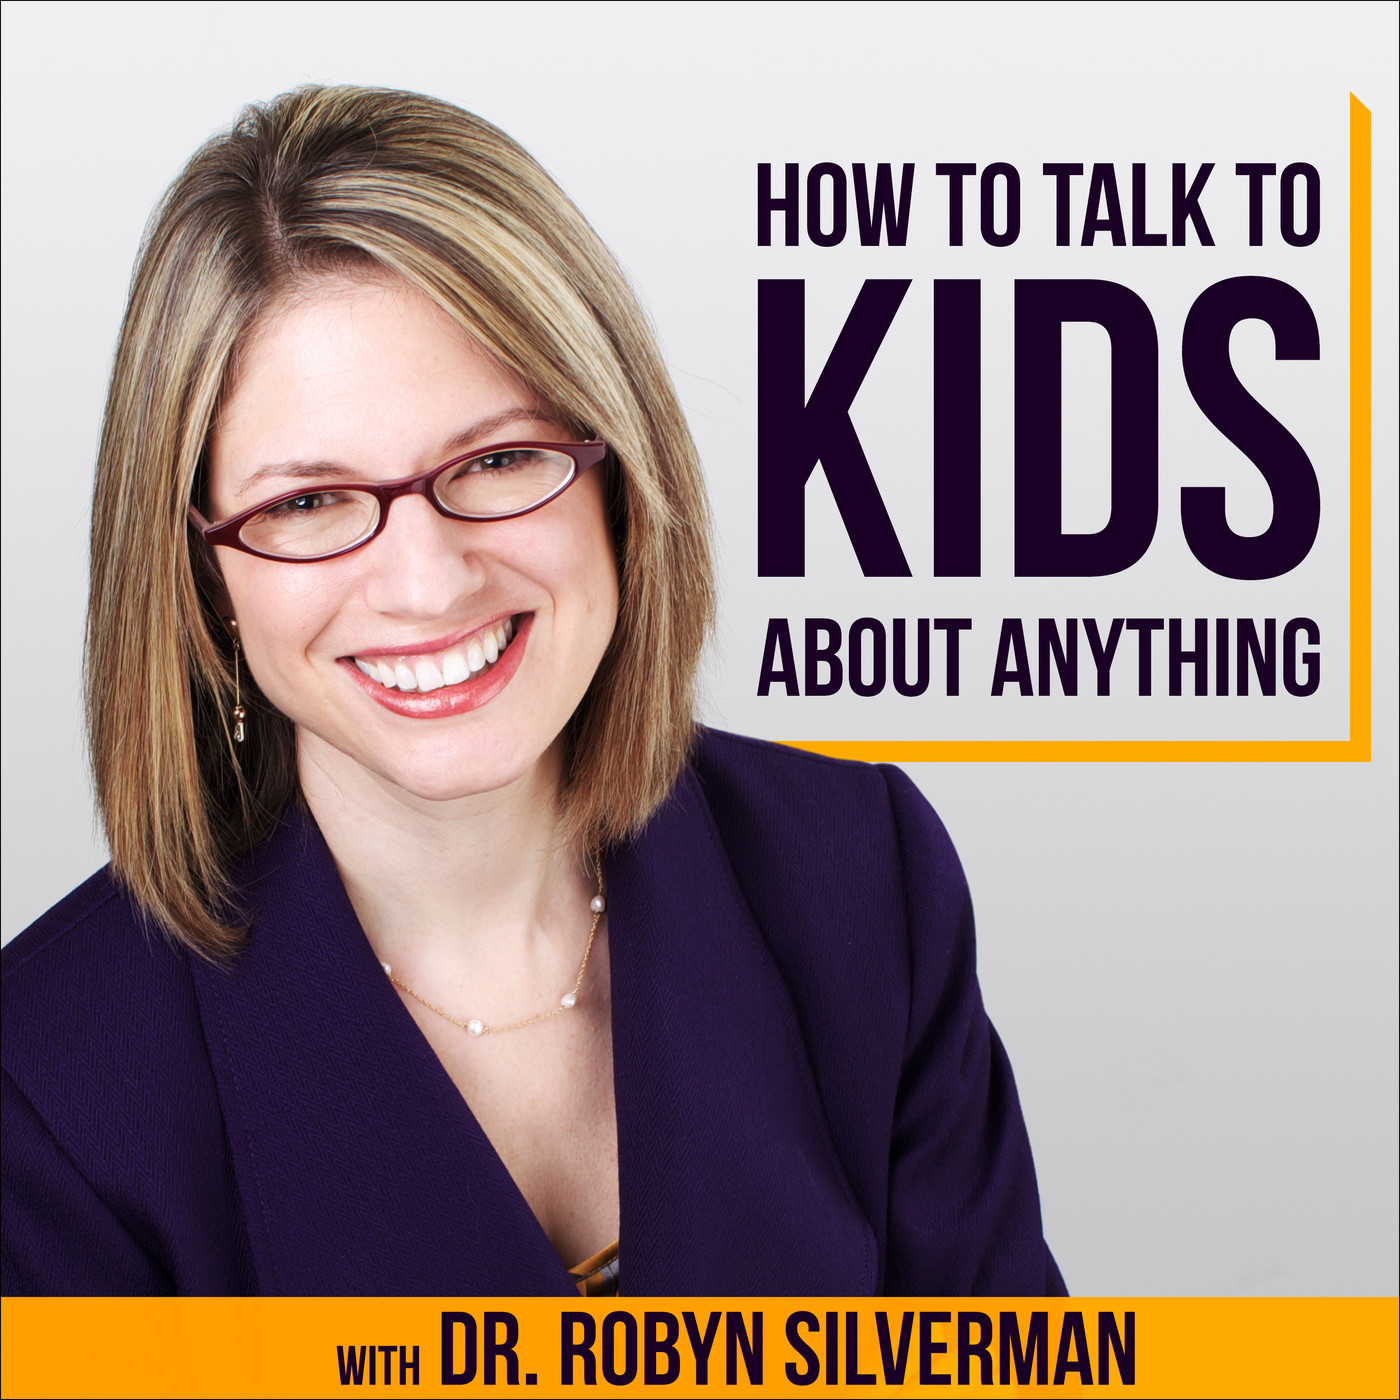 How to Talk to Kids about Bullying with Carrie Goldman – ReRelease